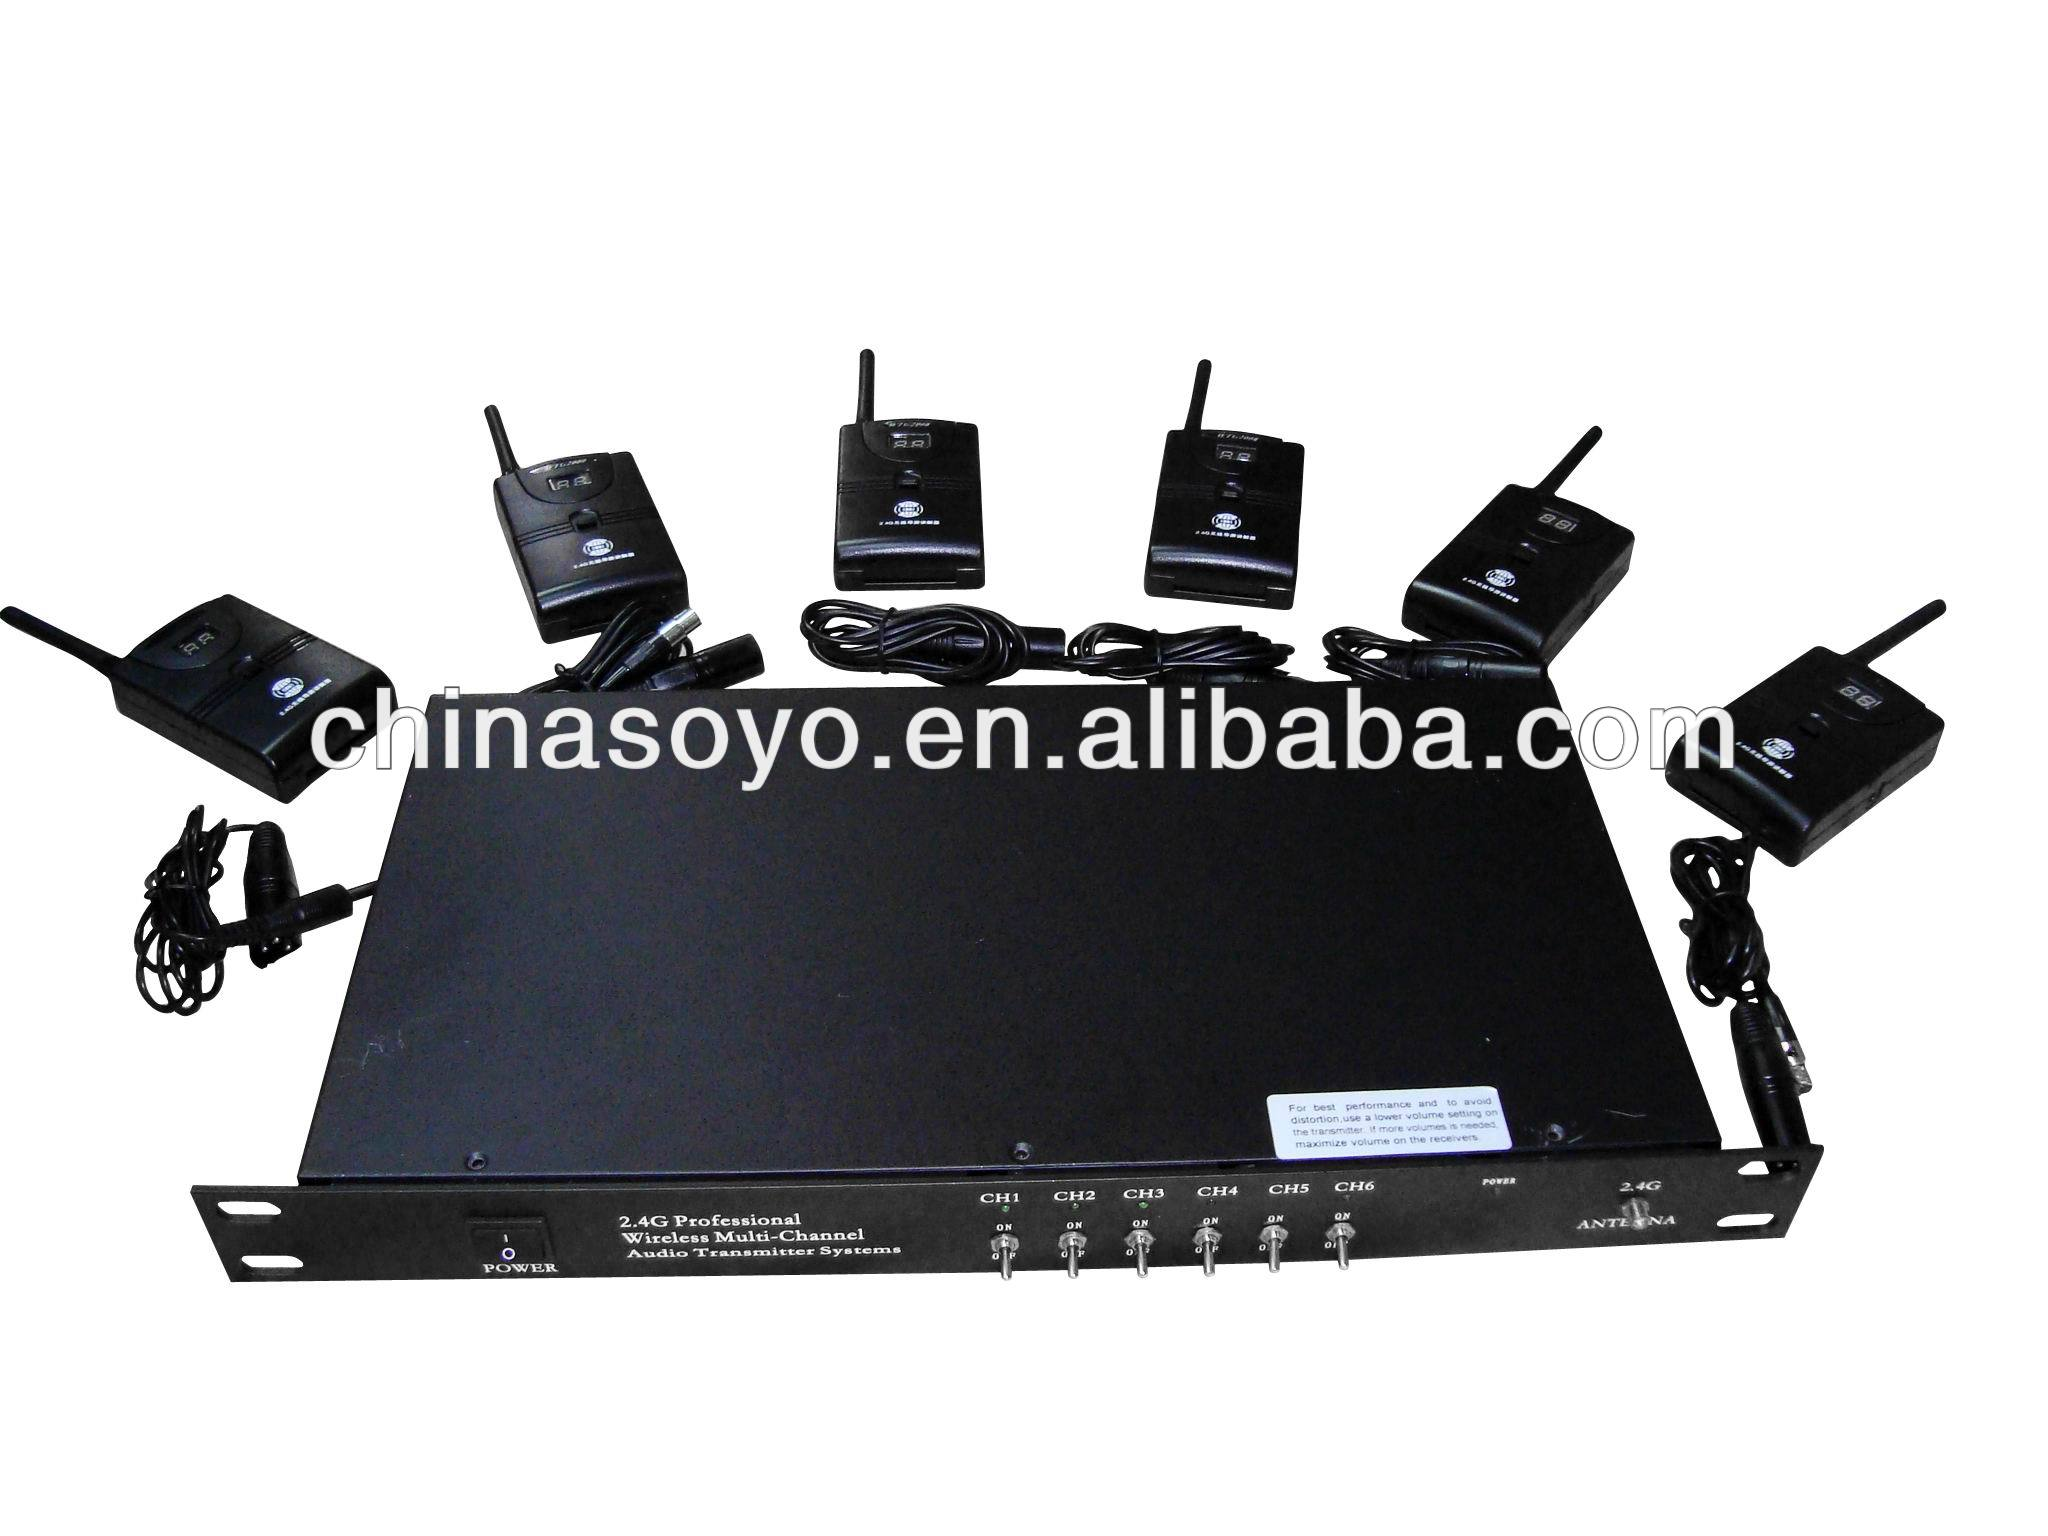 2.4G digital wireless bosch audio conference system